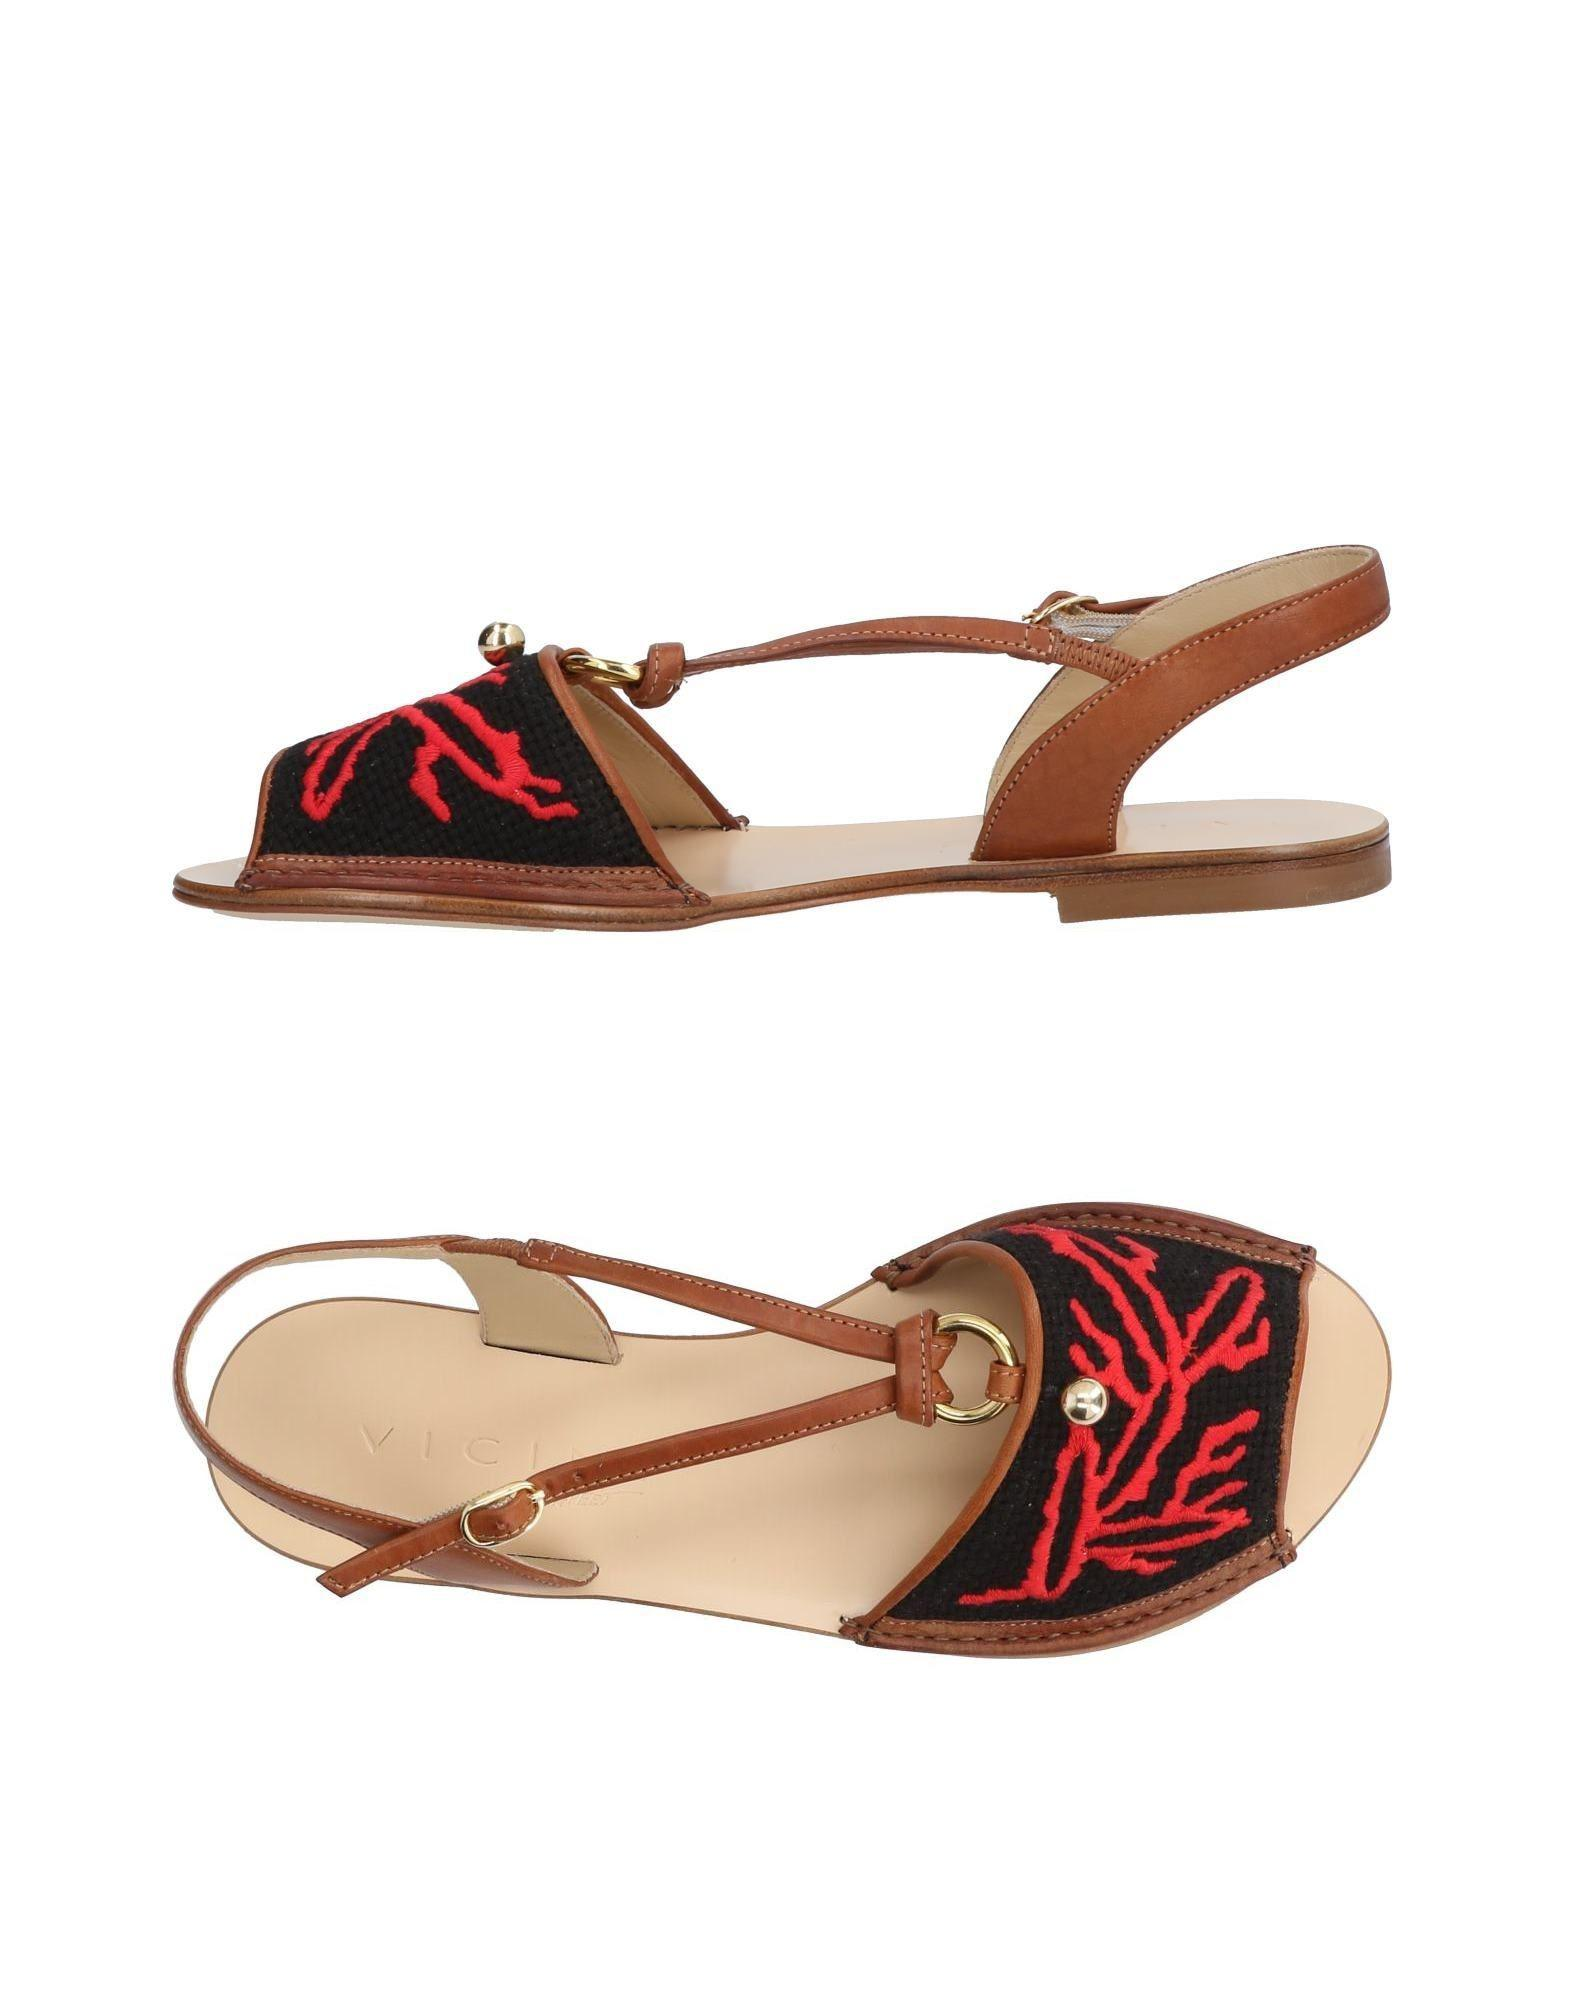 Tapeet by Vicini Woven Thong Sandals clearance authentic SE7AZ5Bwj